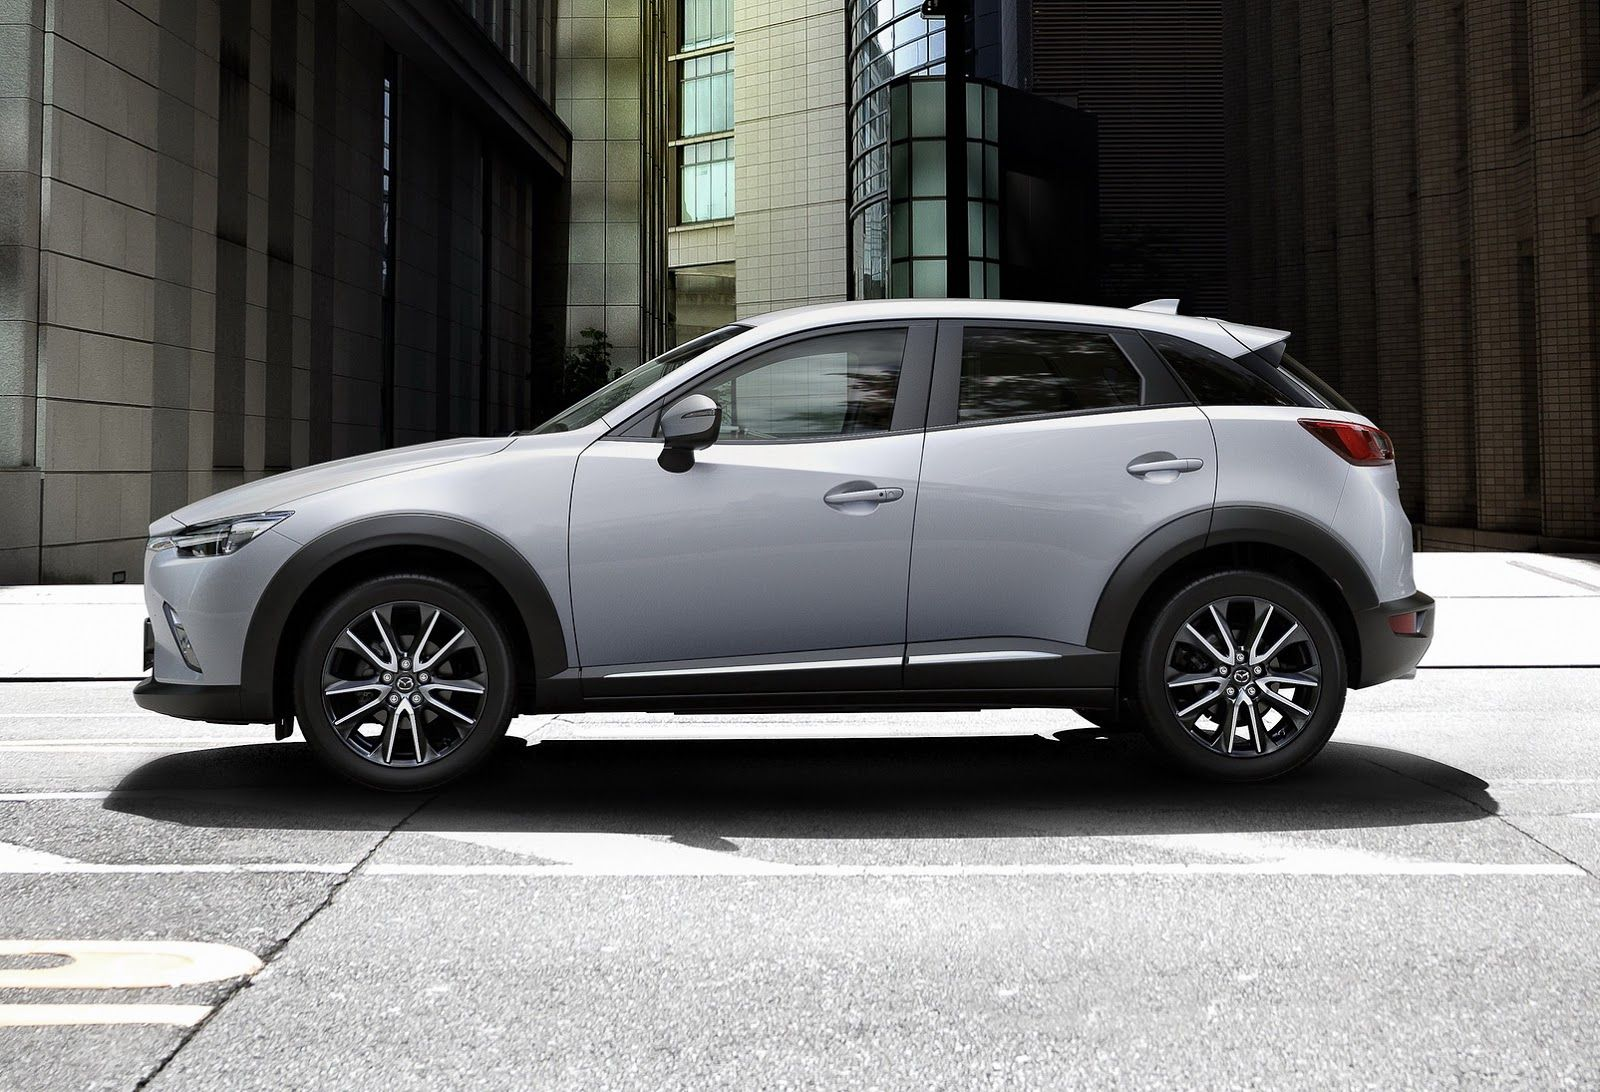 Consumer Reports Find The Mazda Cx 3 To Have A Premium Feel